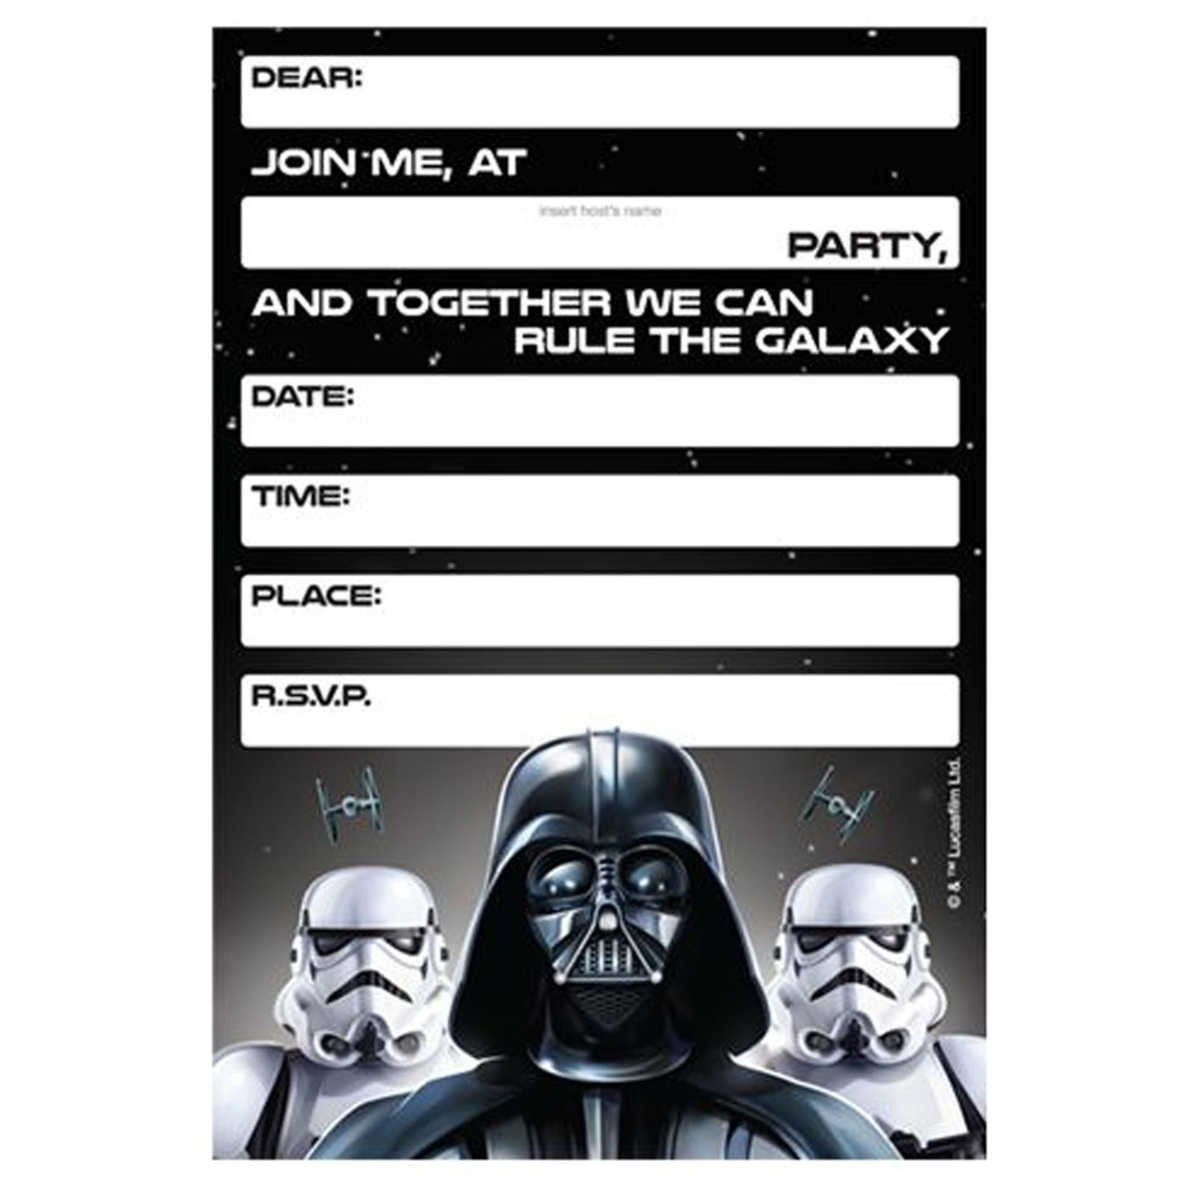 Star Wars Invitations Template Lego Star Wars Birthday Invitations Template – Bagvania